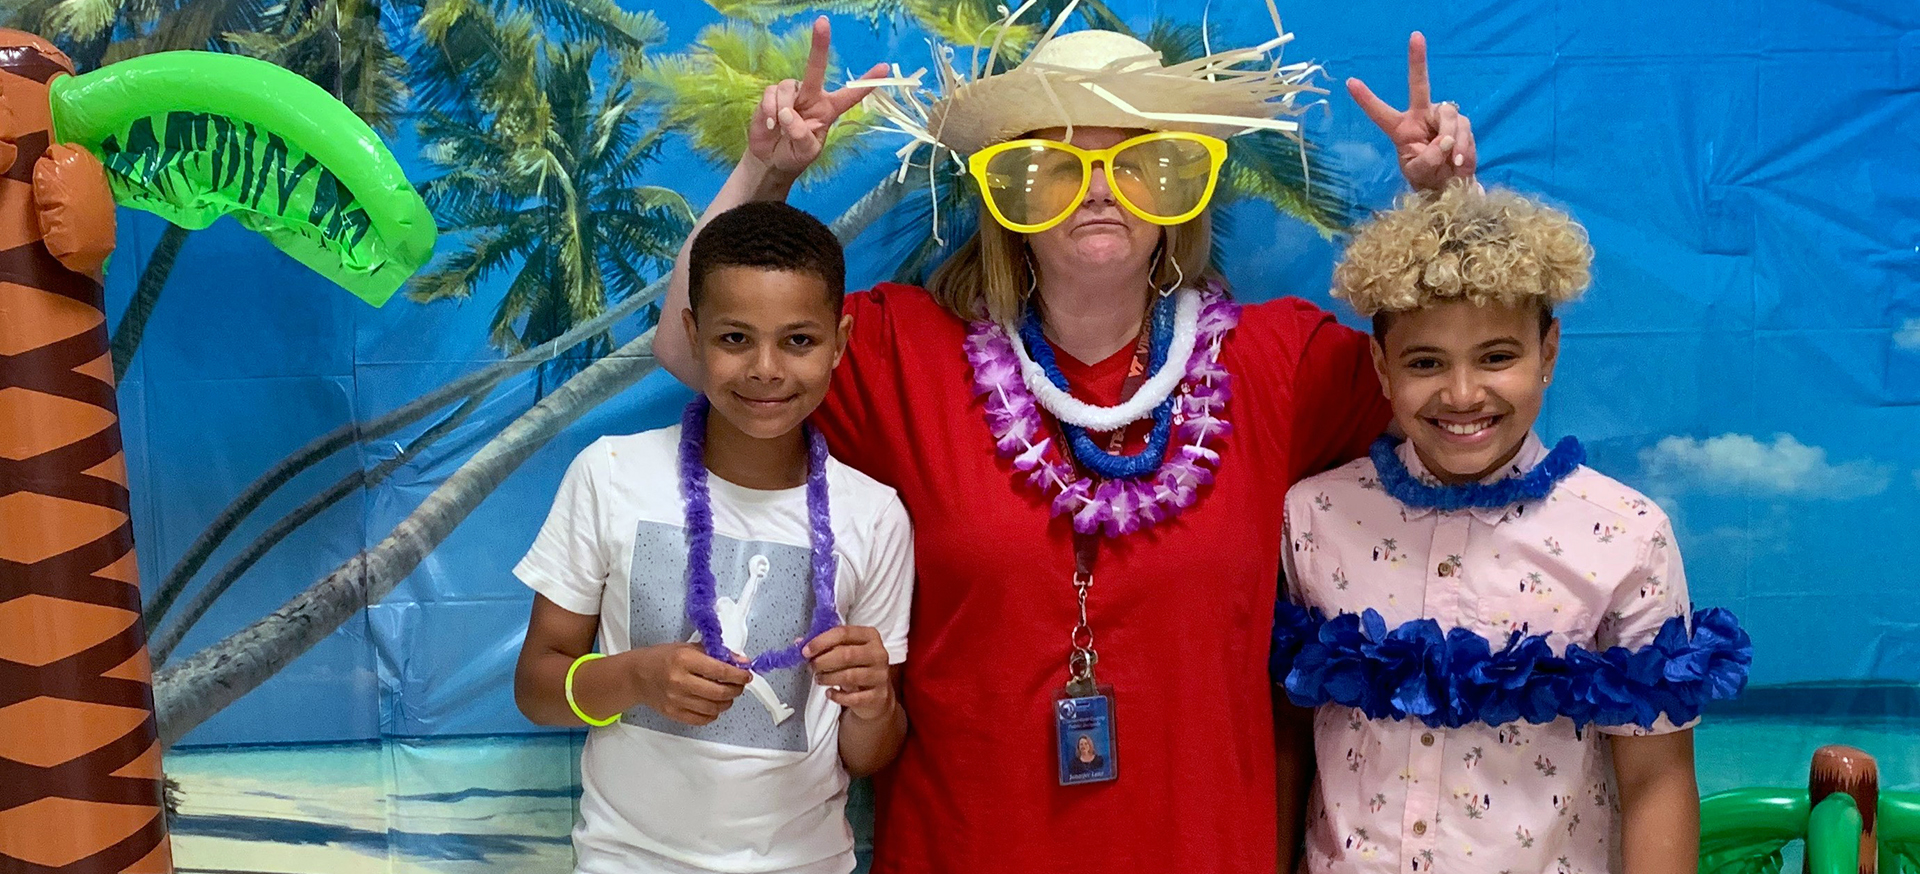 Principal posing with two students in front of faux beach backdrop.